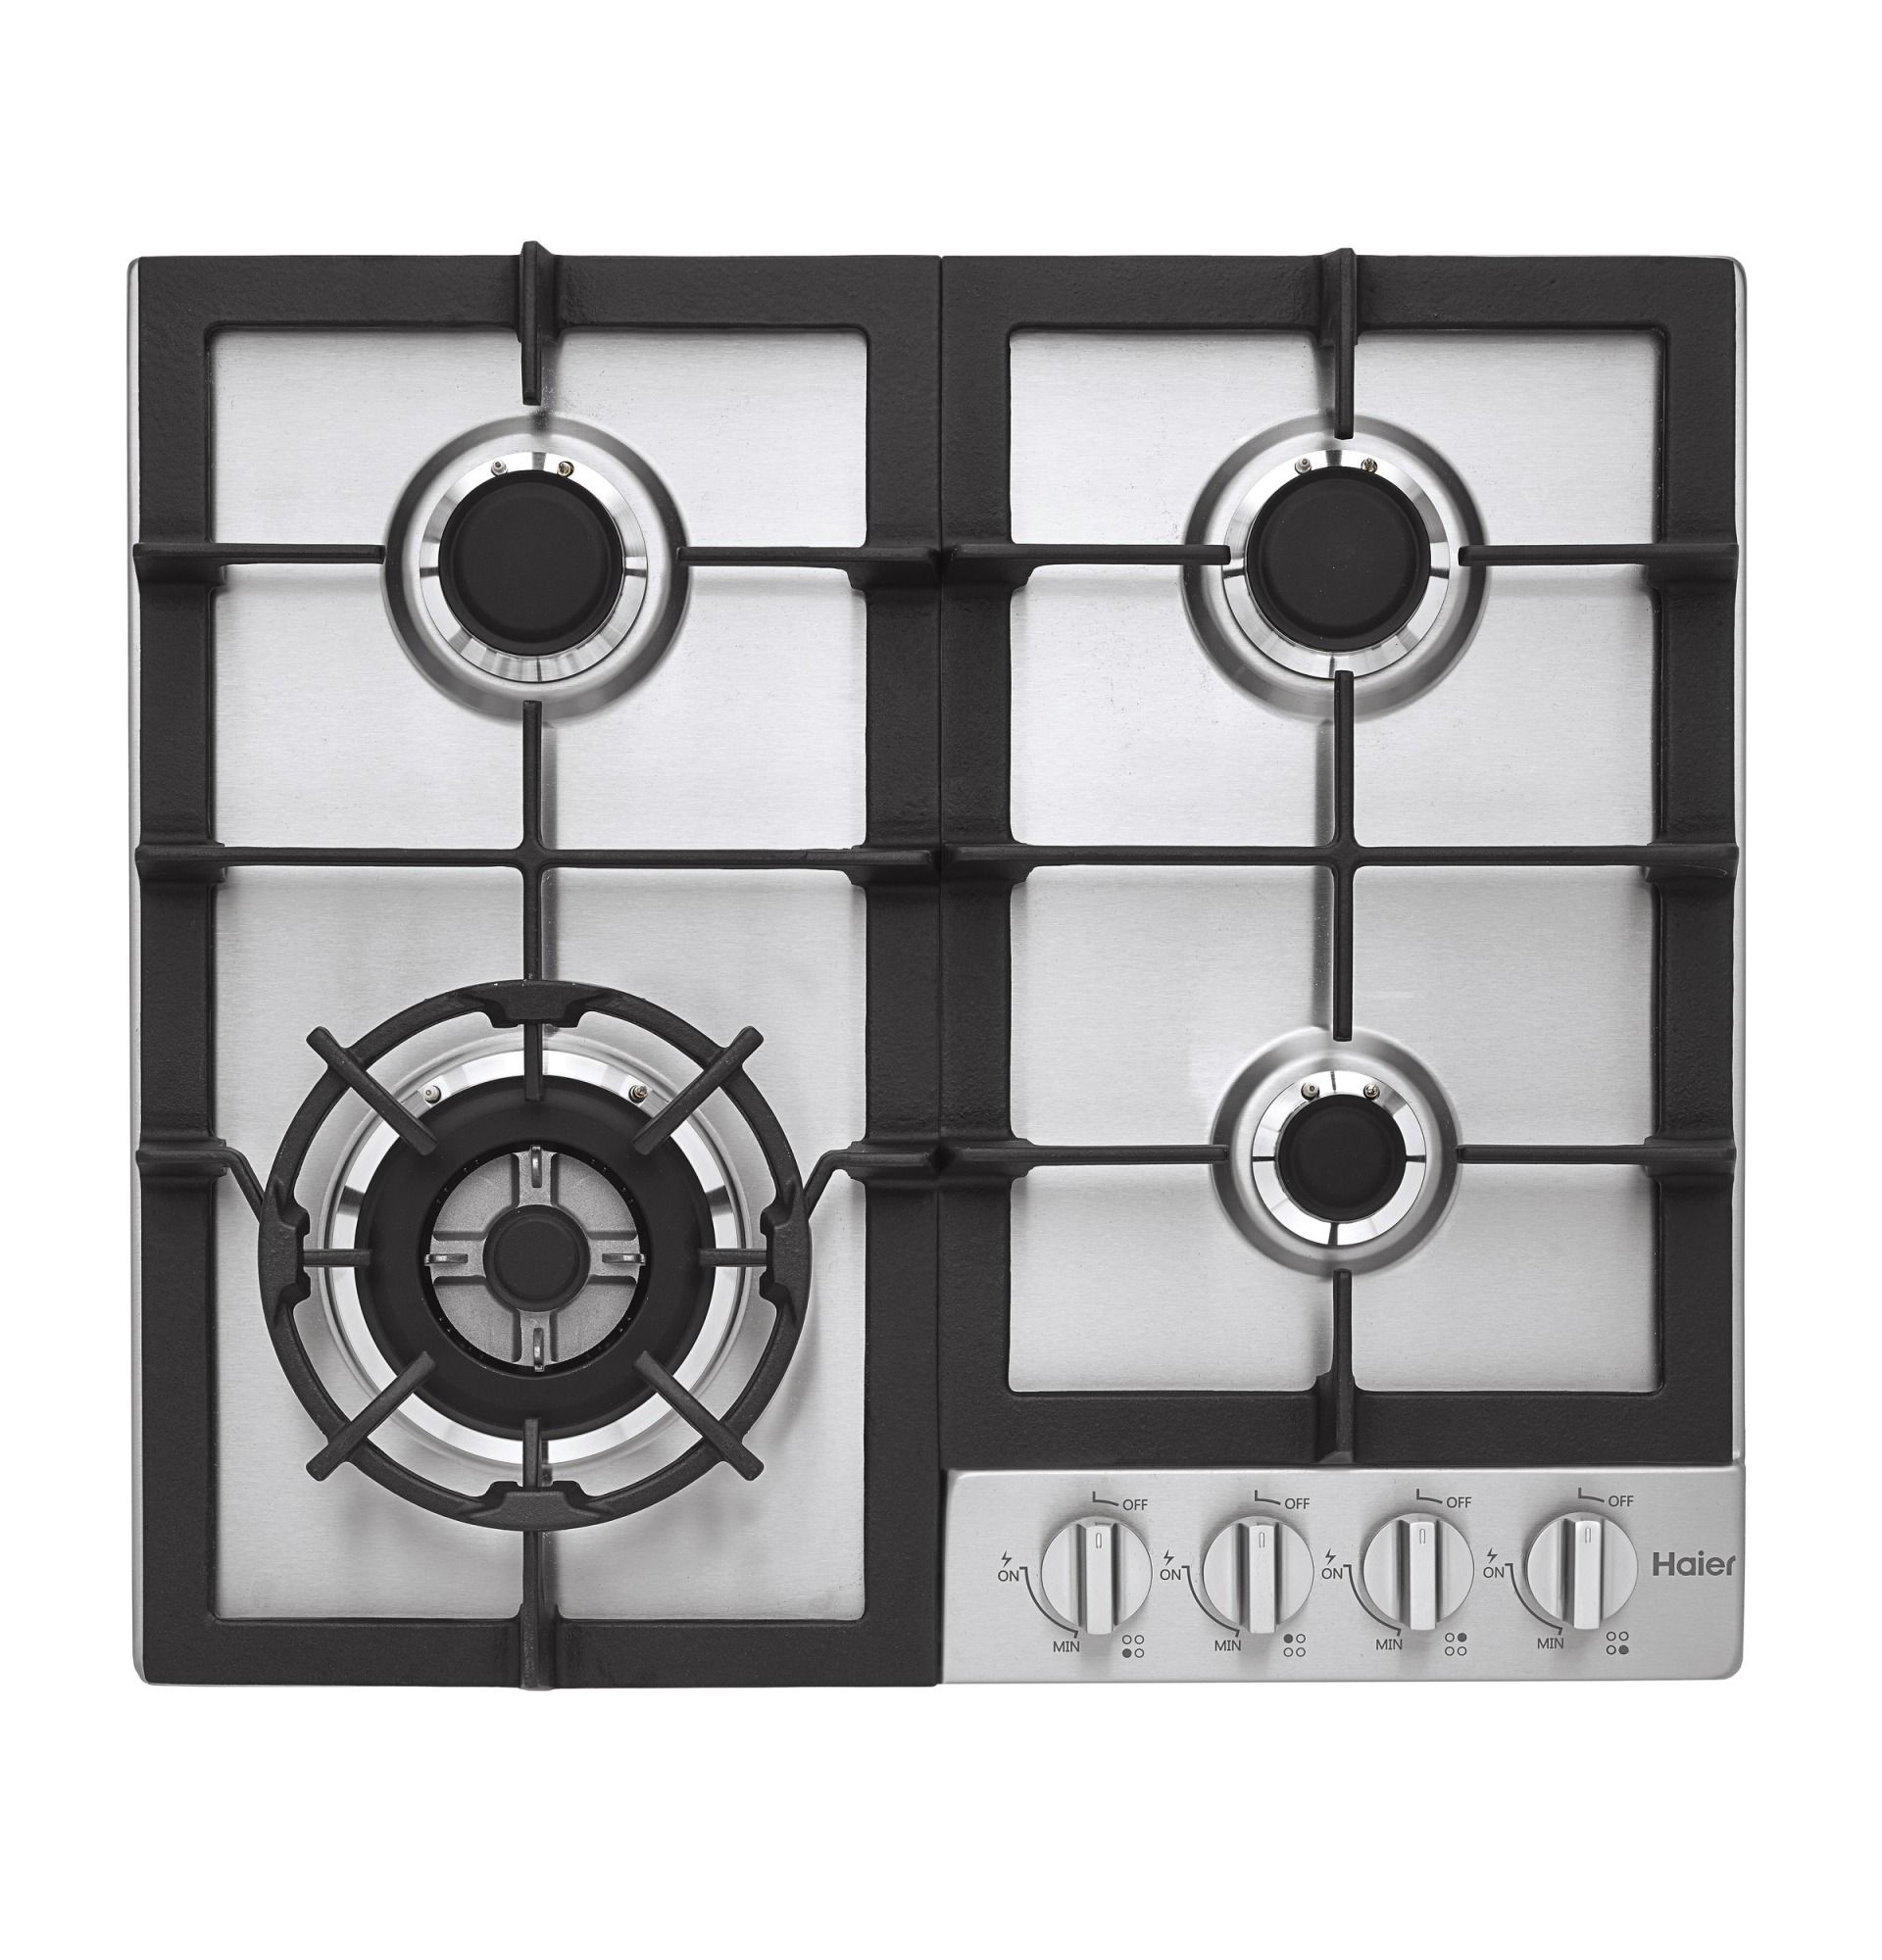 Haier Hcc2230ags 24 Gas Cooktop Stainless Stainless Steel Gas Cooktop Stainless Steel Cooktop Cooktop